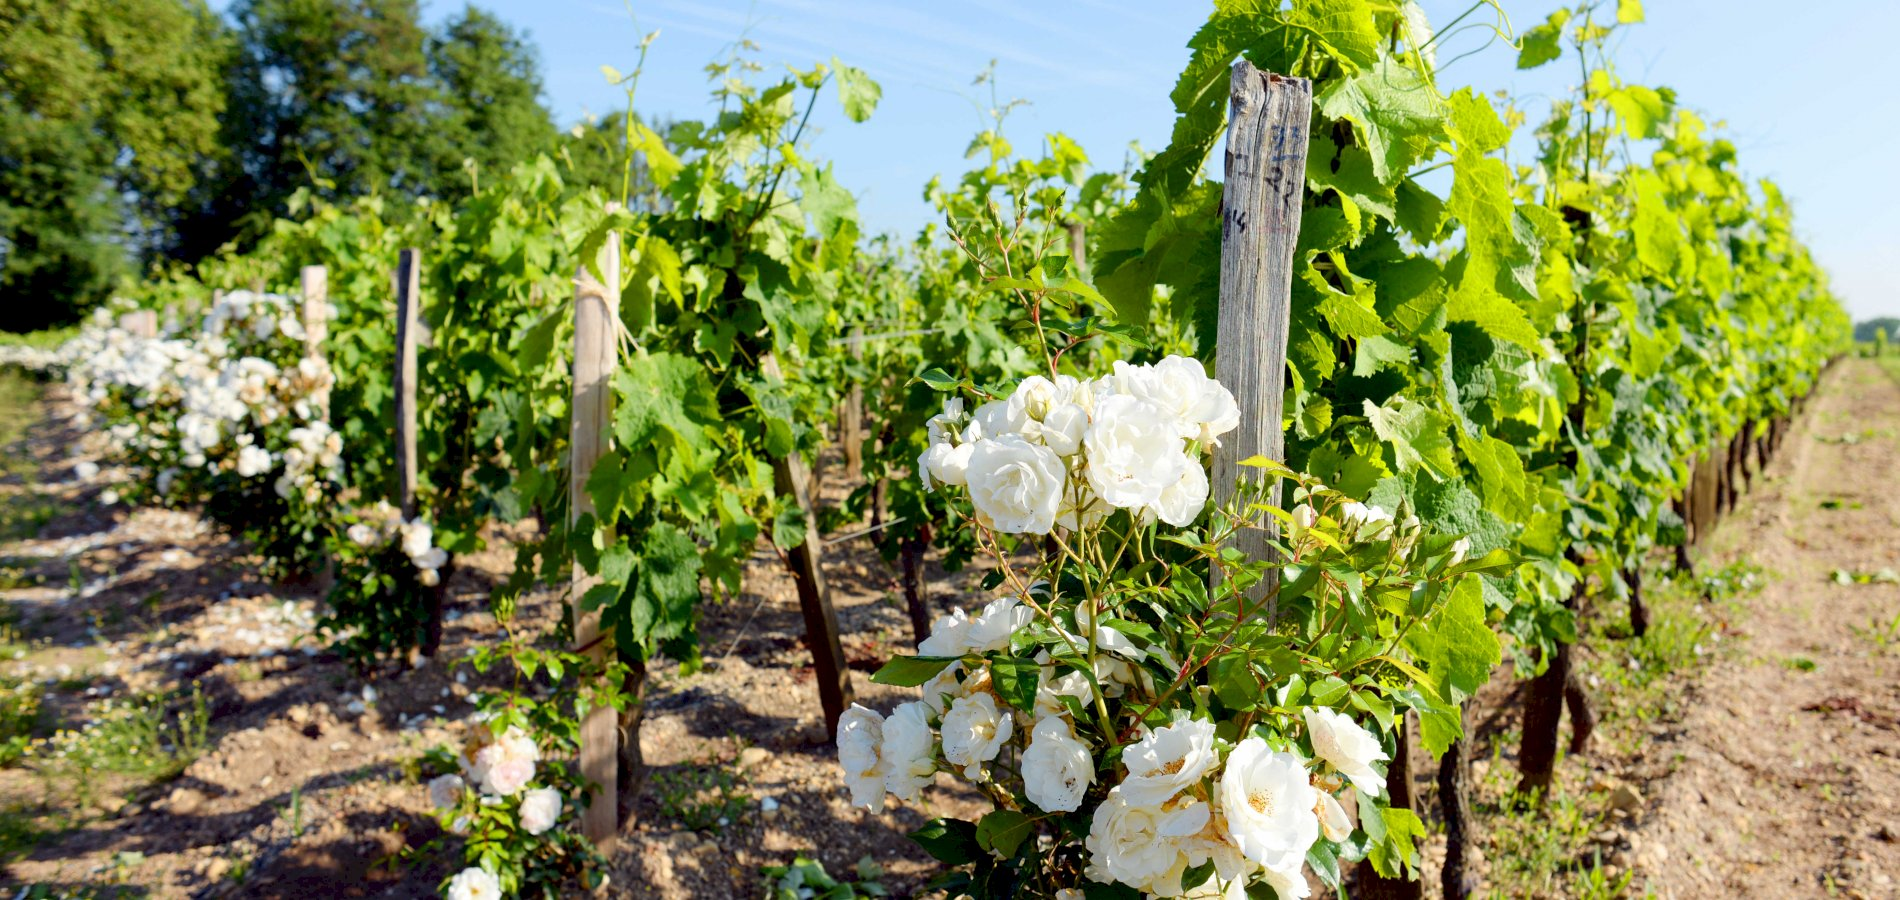 Ophorus Tours - Saint Emilion Wine Tour Private Half Day Trip from Bordeaux for 2 persons